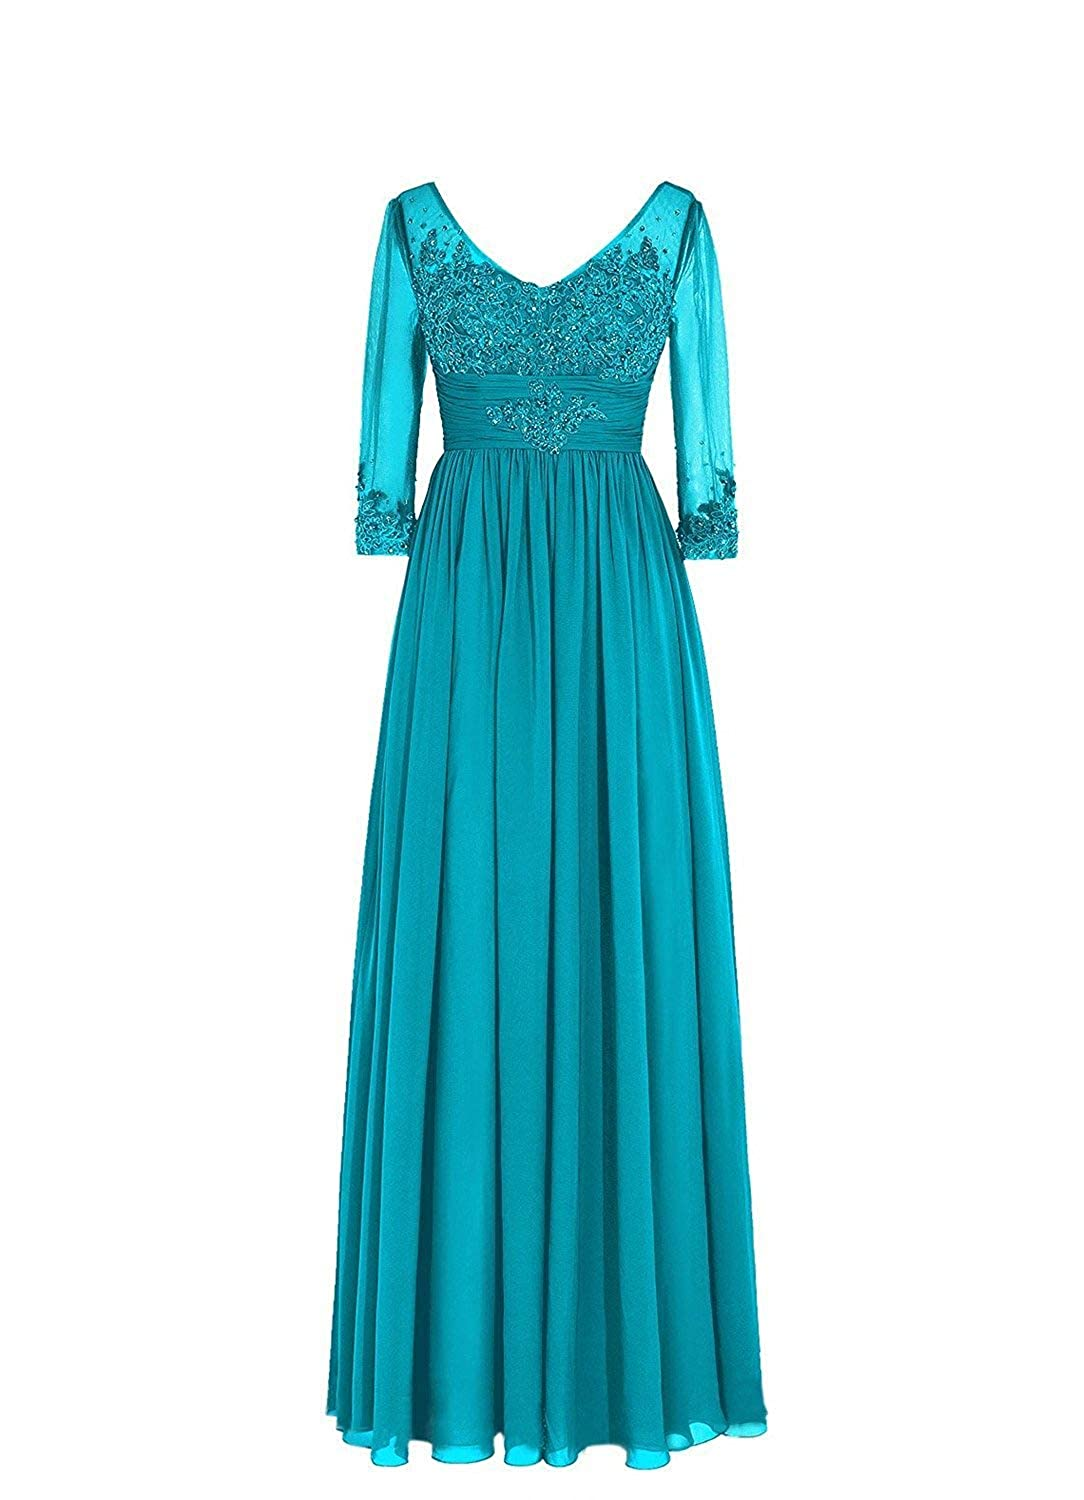 Turquoise Women's Sequins Lace Appliques Half Sleeve VNeck Mother of The Bride Dress